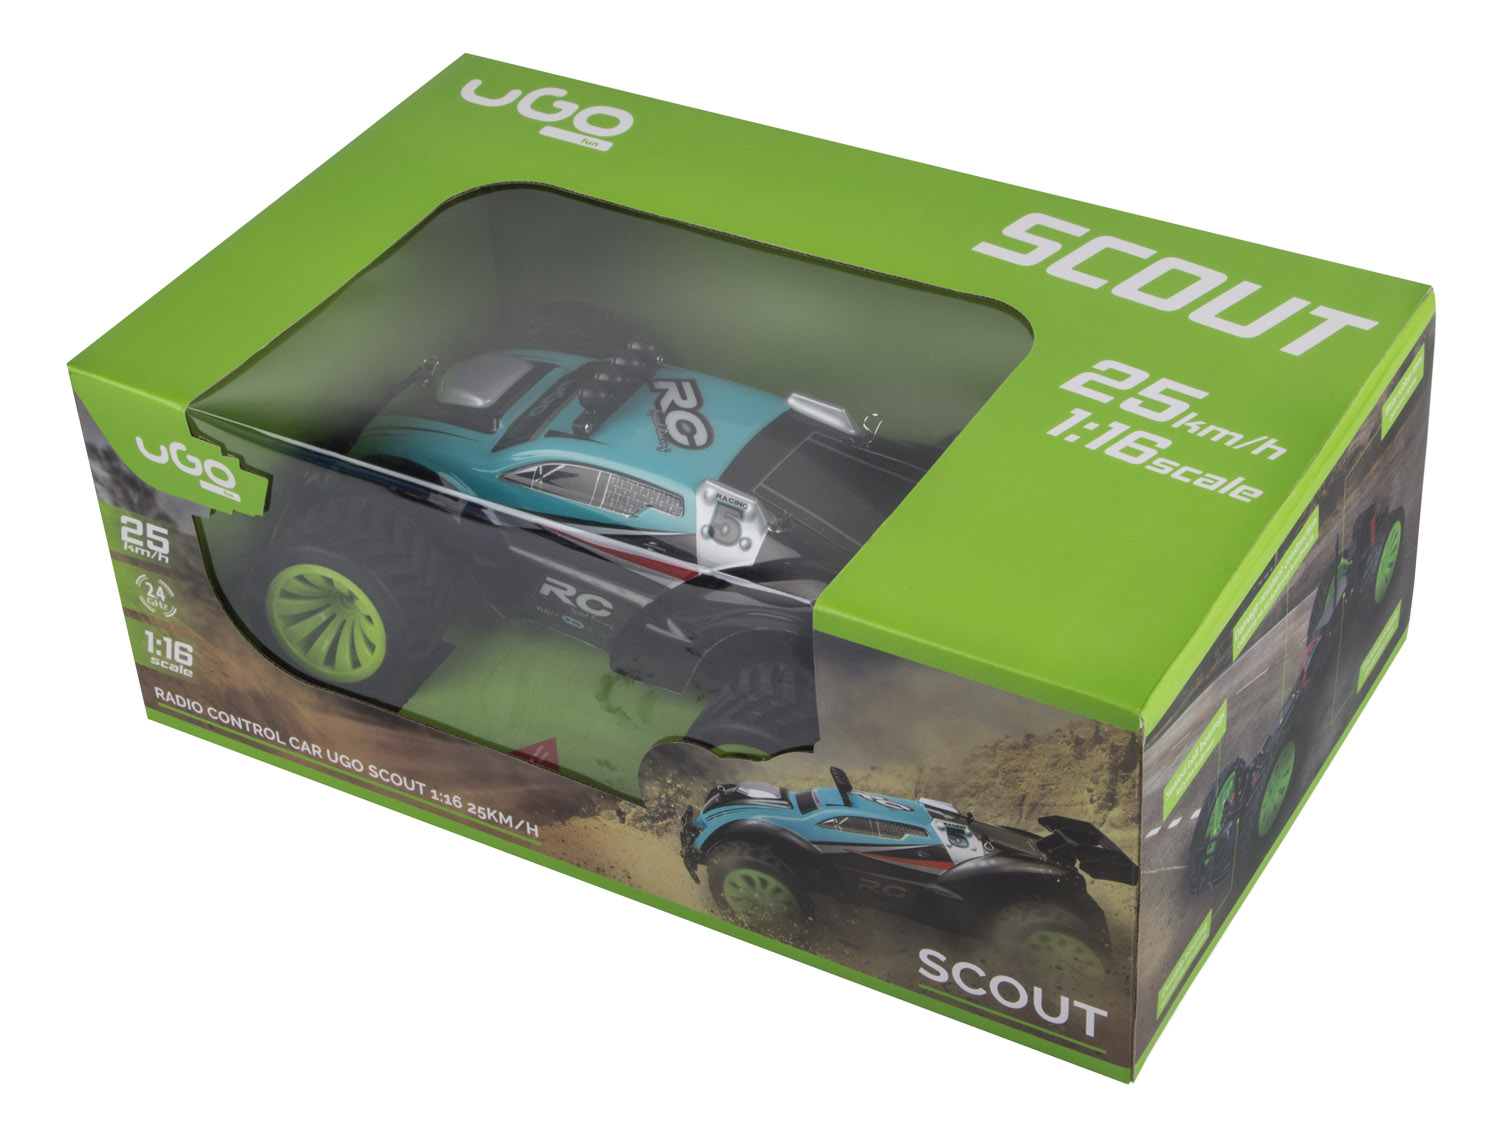 RC model UGO Scout 1:16 25 km/h